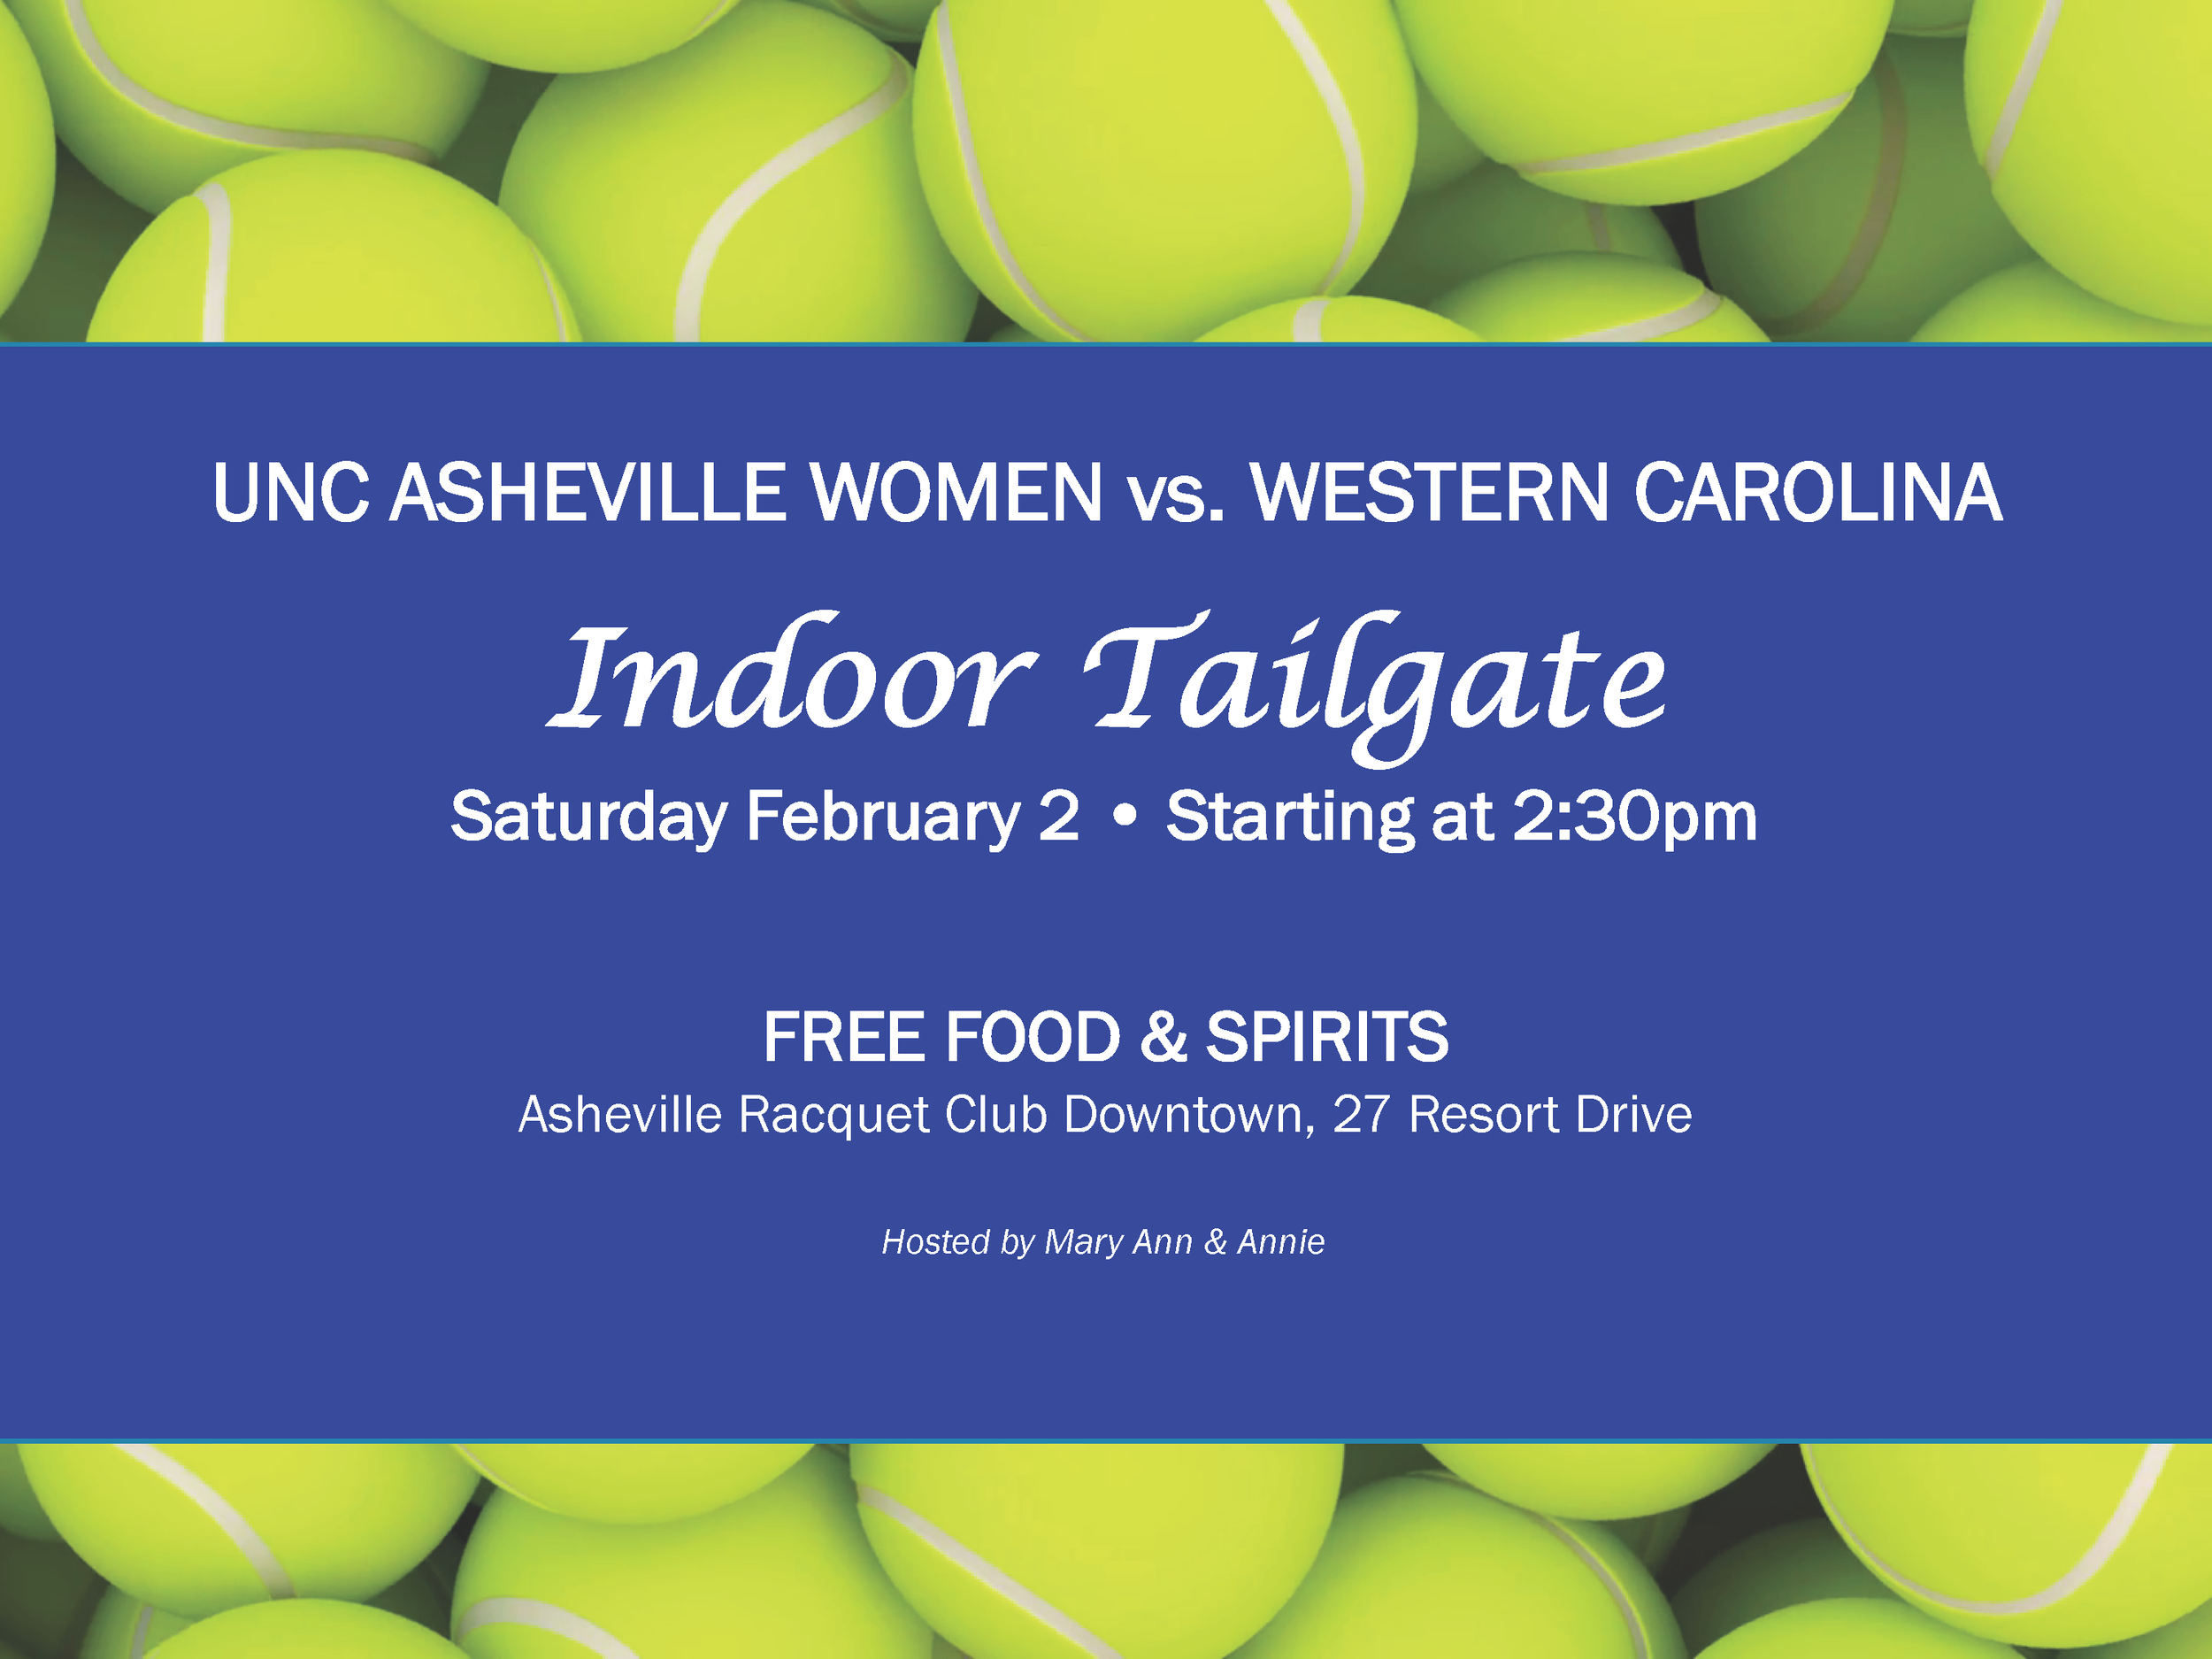 unca_tailgate_201902.png